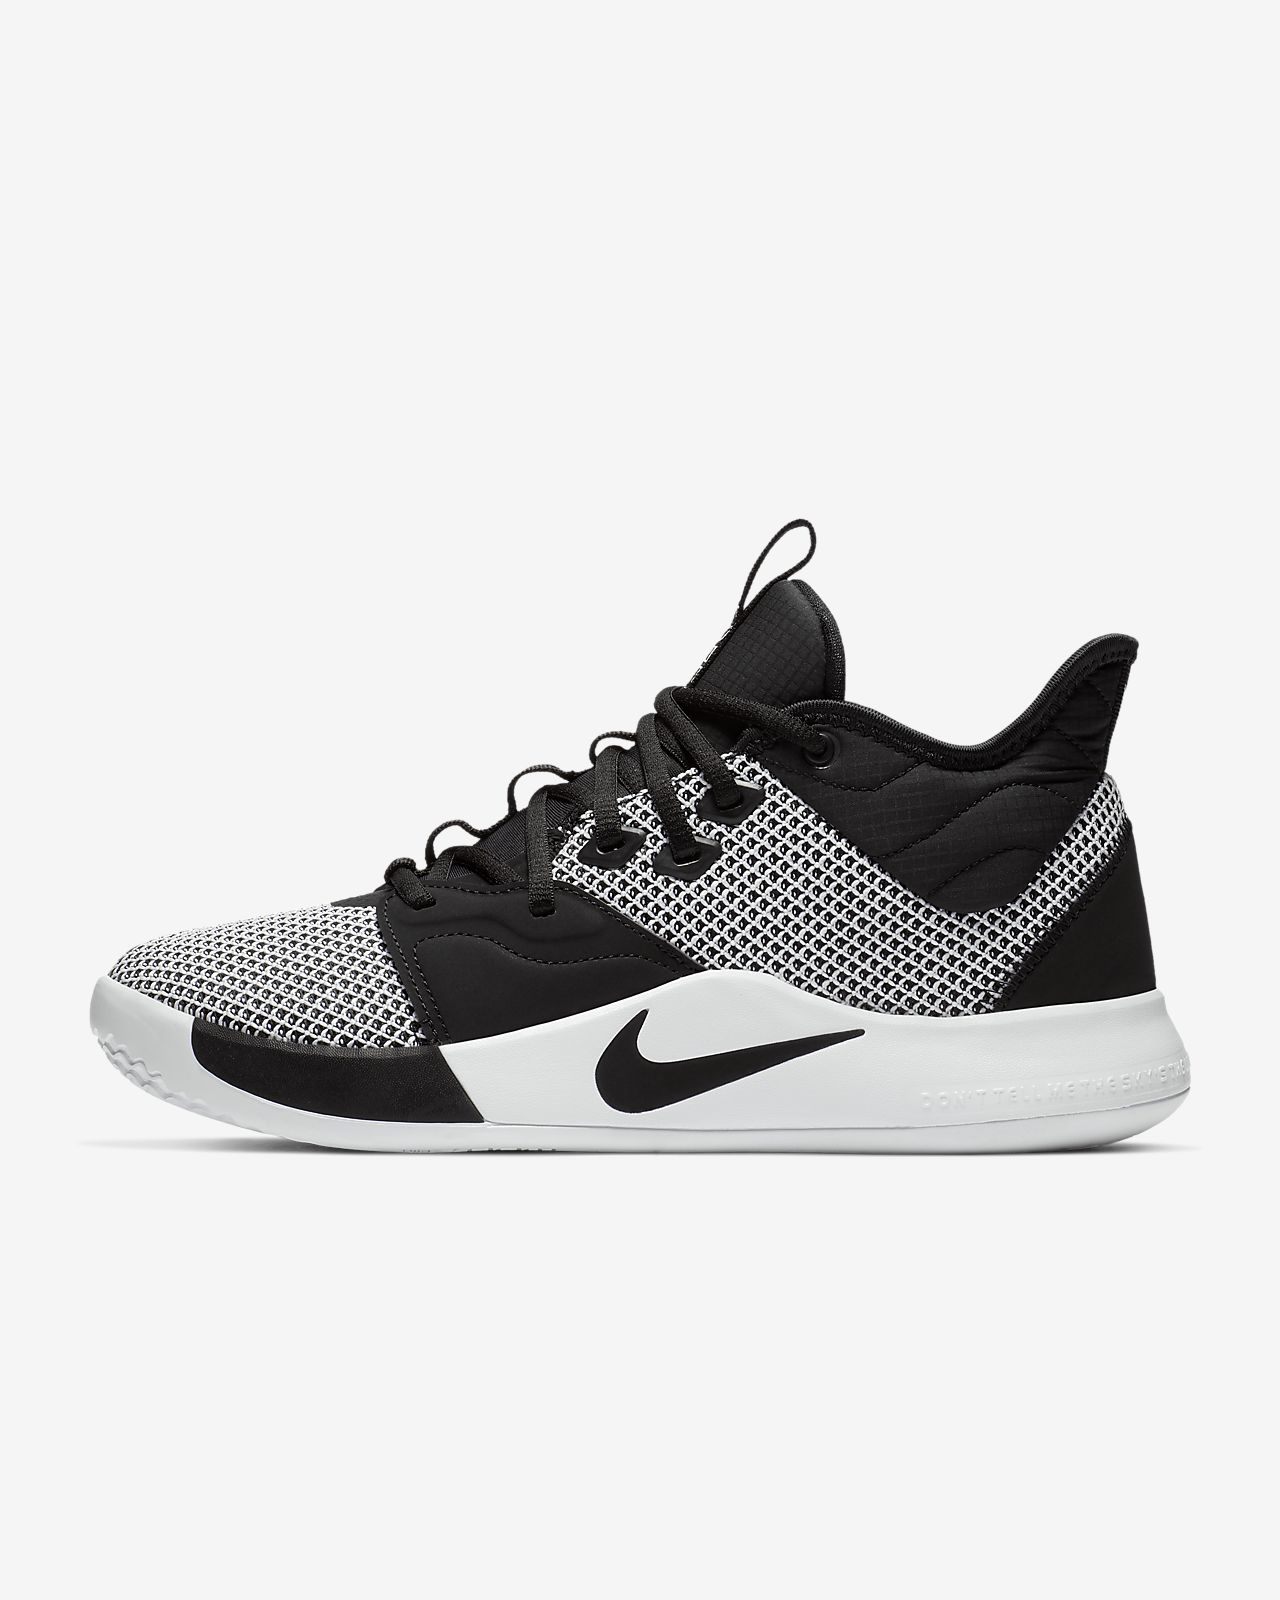 new arrival a64aa 8848f Low Resolution PG 3 Basketball Shoe PG 3 Basketball Shoe